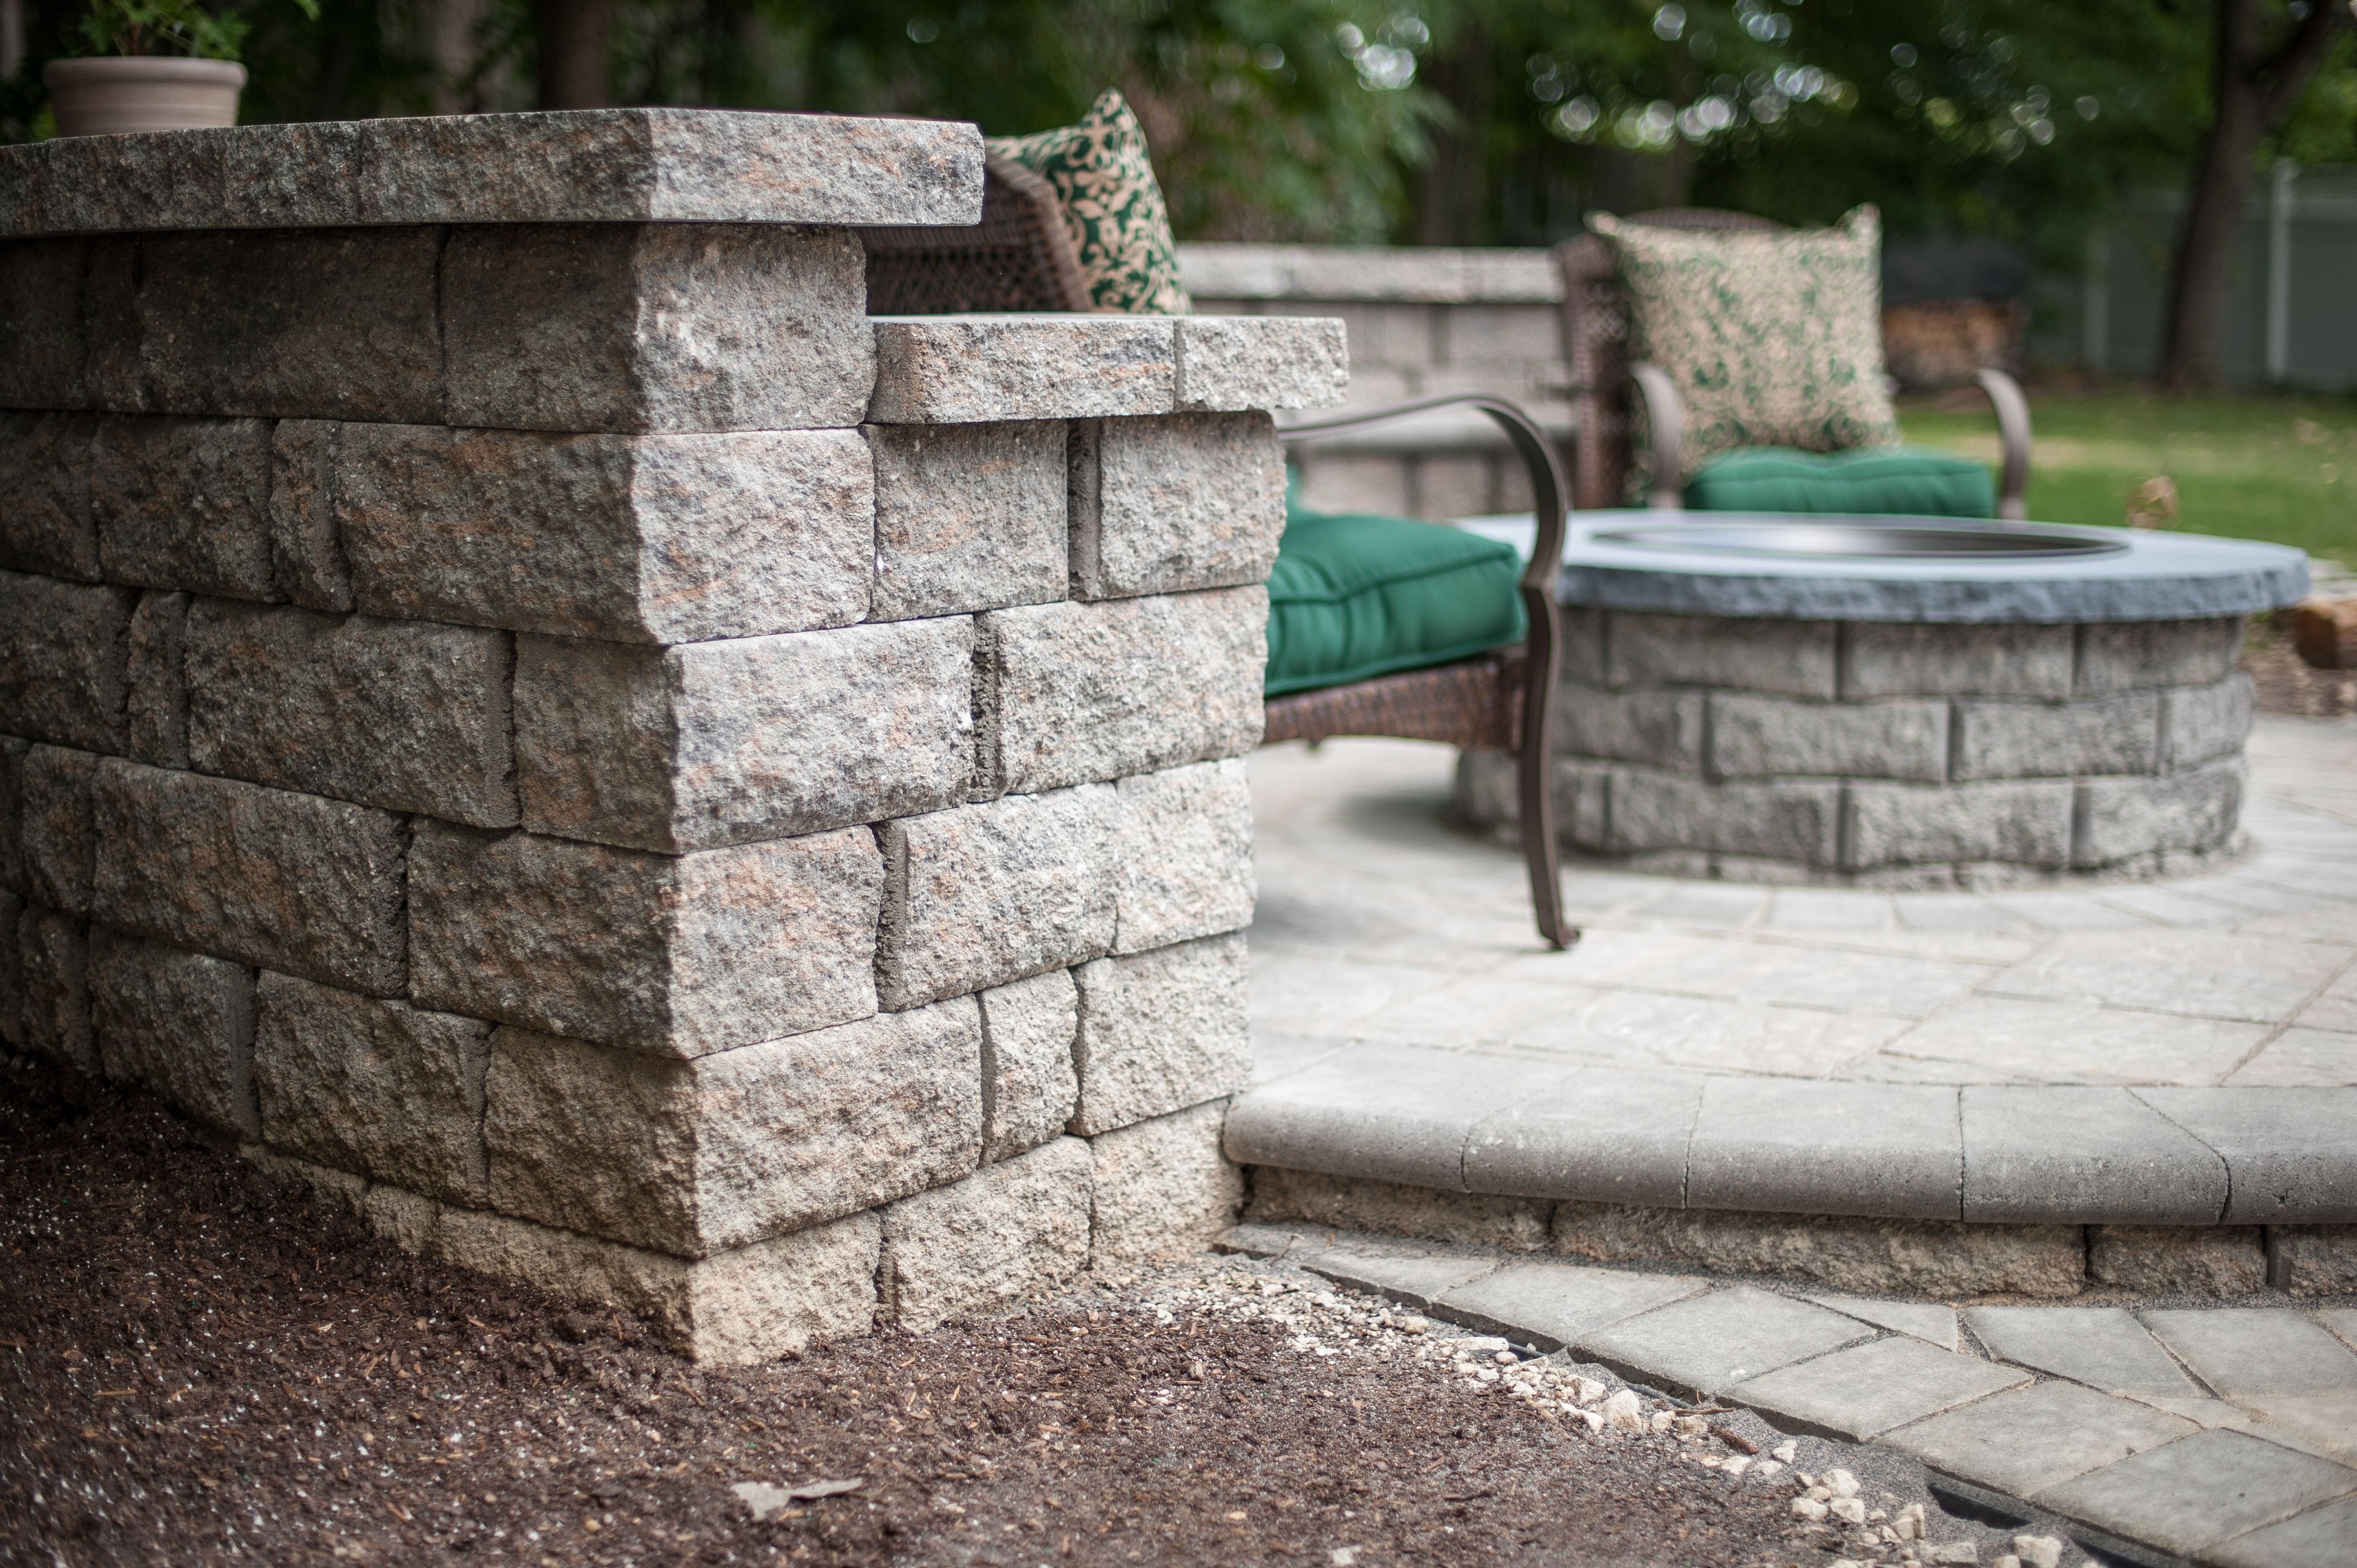 Eagle Bay fire pit kits are easy to match to other pavers so you